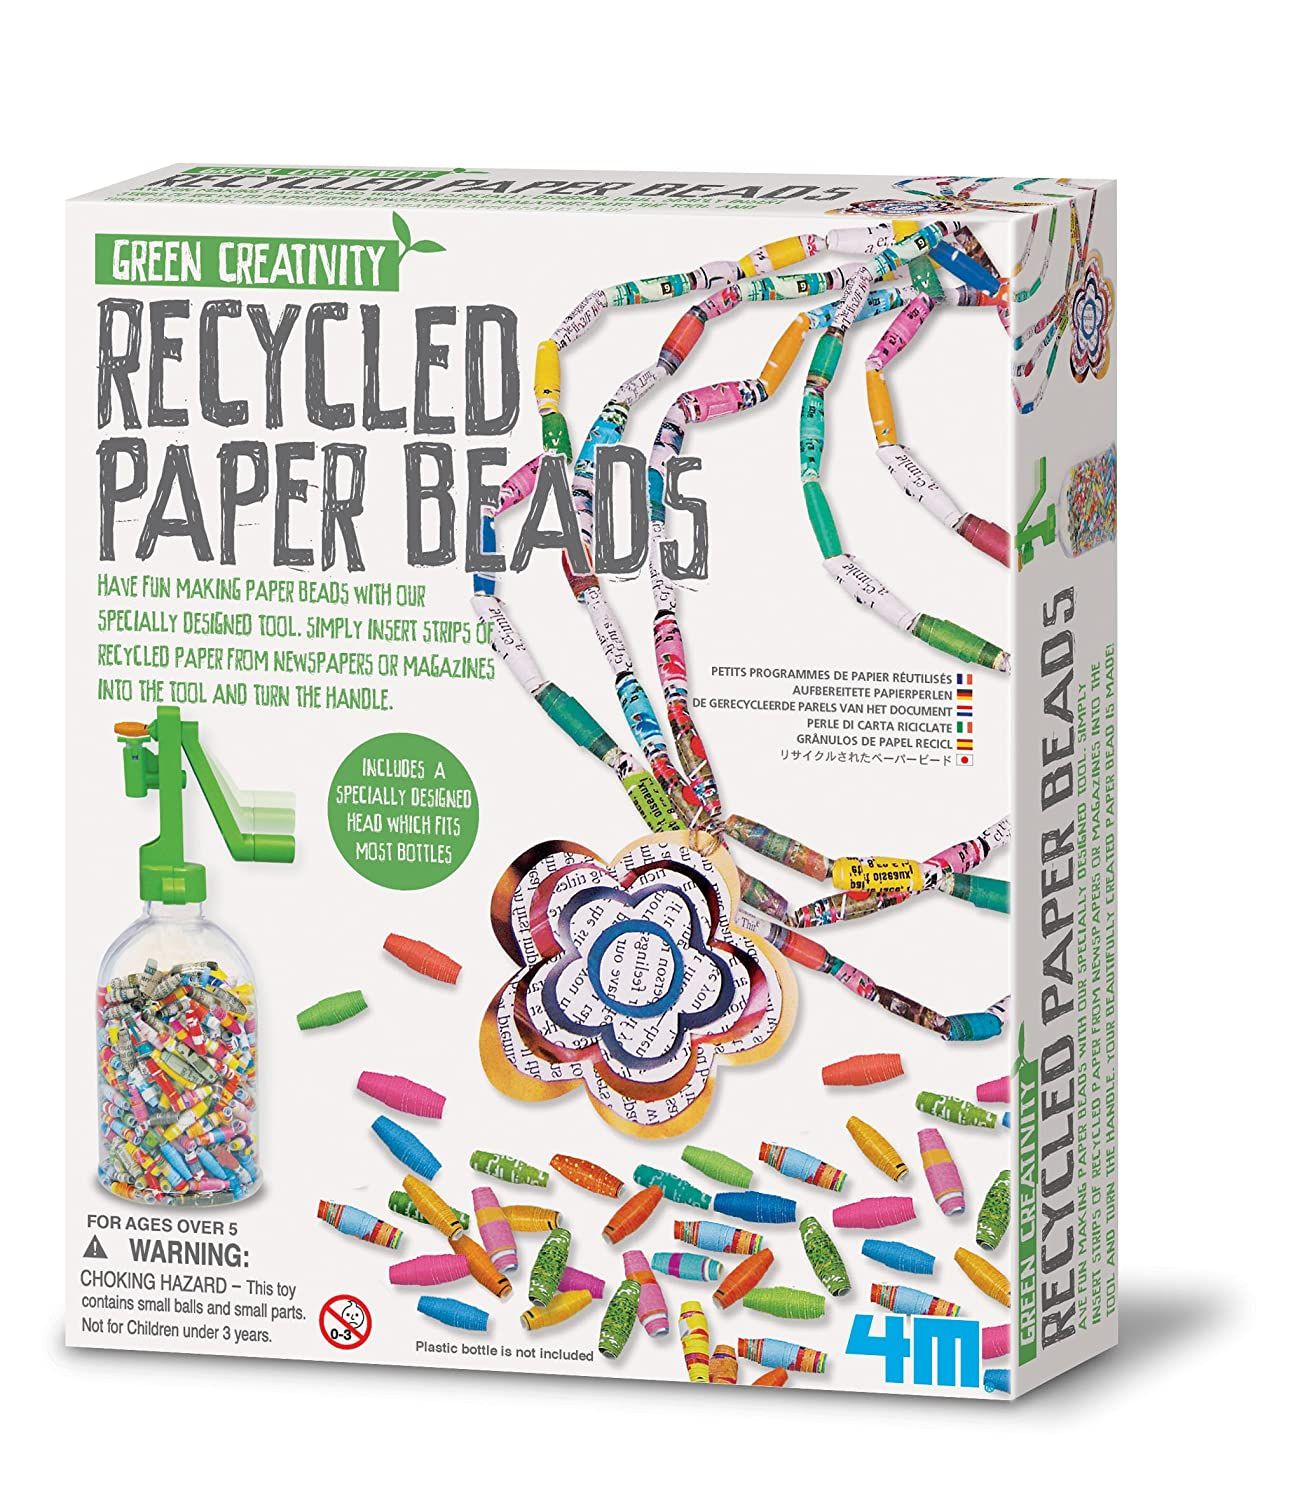 Make Your Own Recycled Paper Beads Fashion Jewellery - Creative Jewellery Making Kit - Great Creative - Present Gift Idea For Easter Arts & Crafts Age 5+ Children Kids Boys Girls Green Creativity